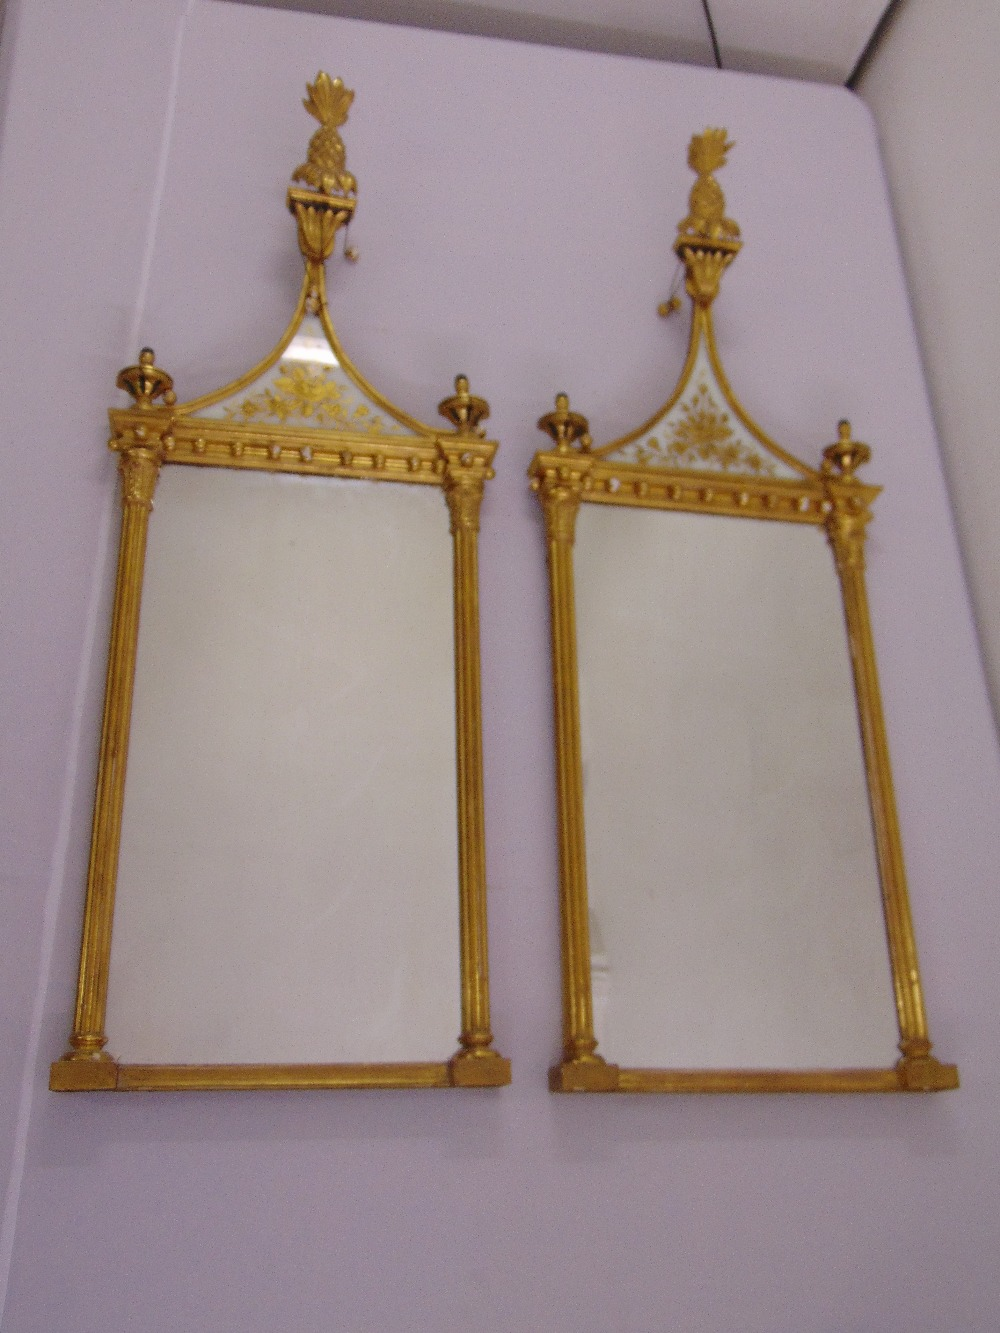 Lot 50 - A pair of neo-classical rectangular wall mirrors surmounted by pineapple finials